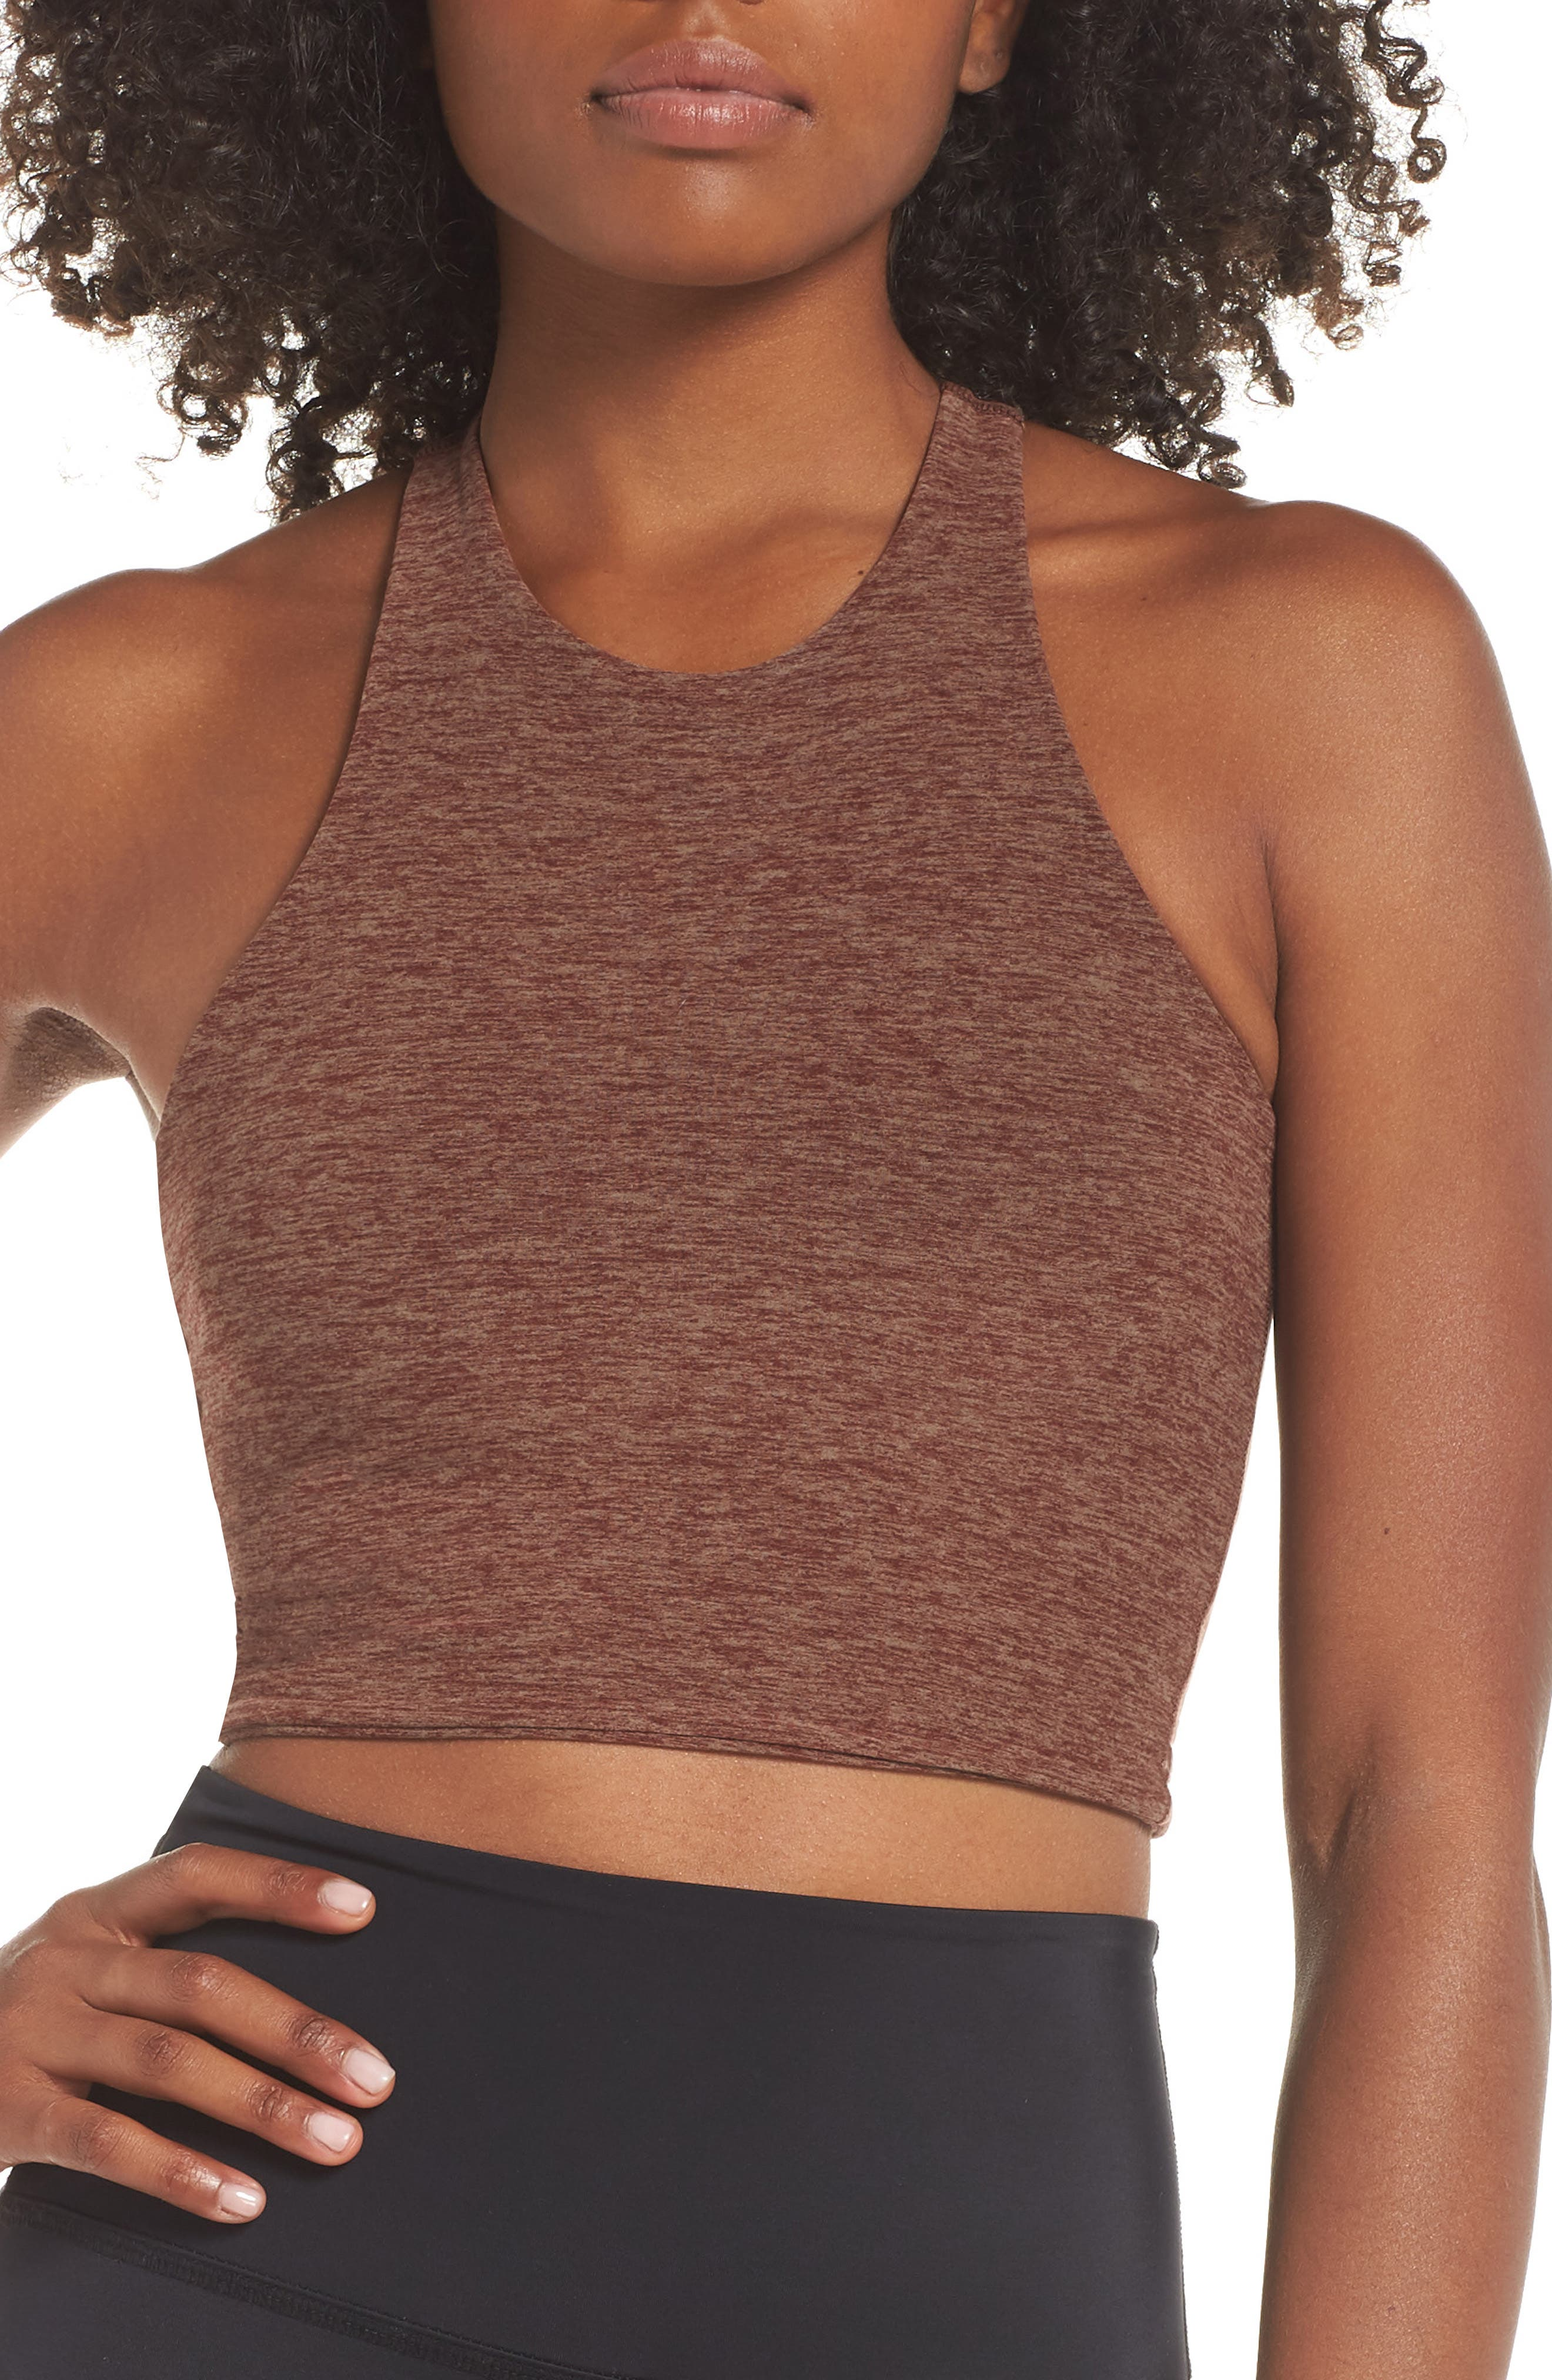 Across the Strap Cropped Top,                             Main thumbnail 1, color,                             RED ROCK/ TUMBLEWEED